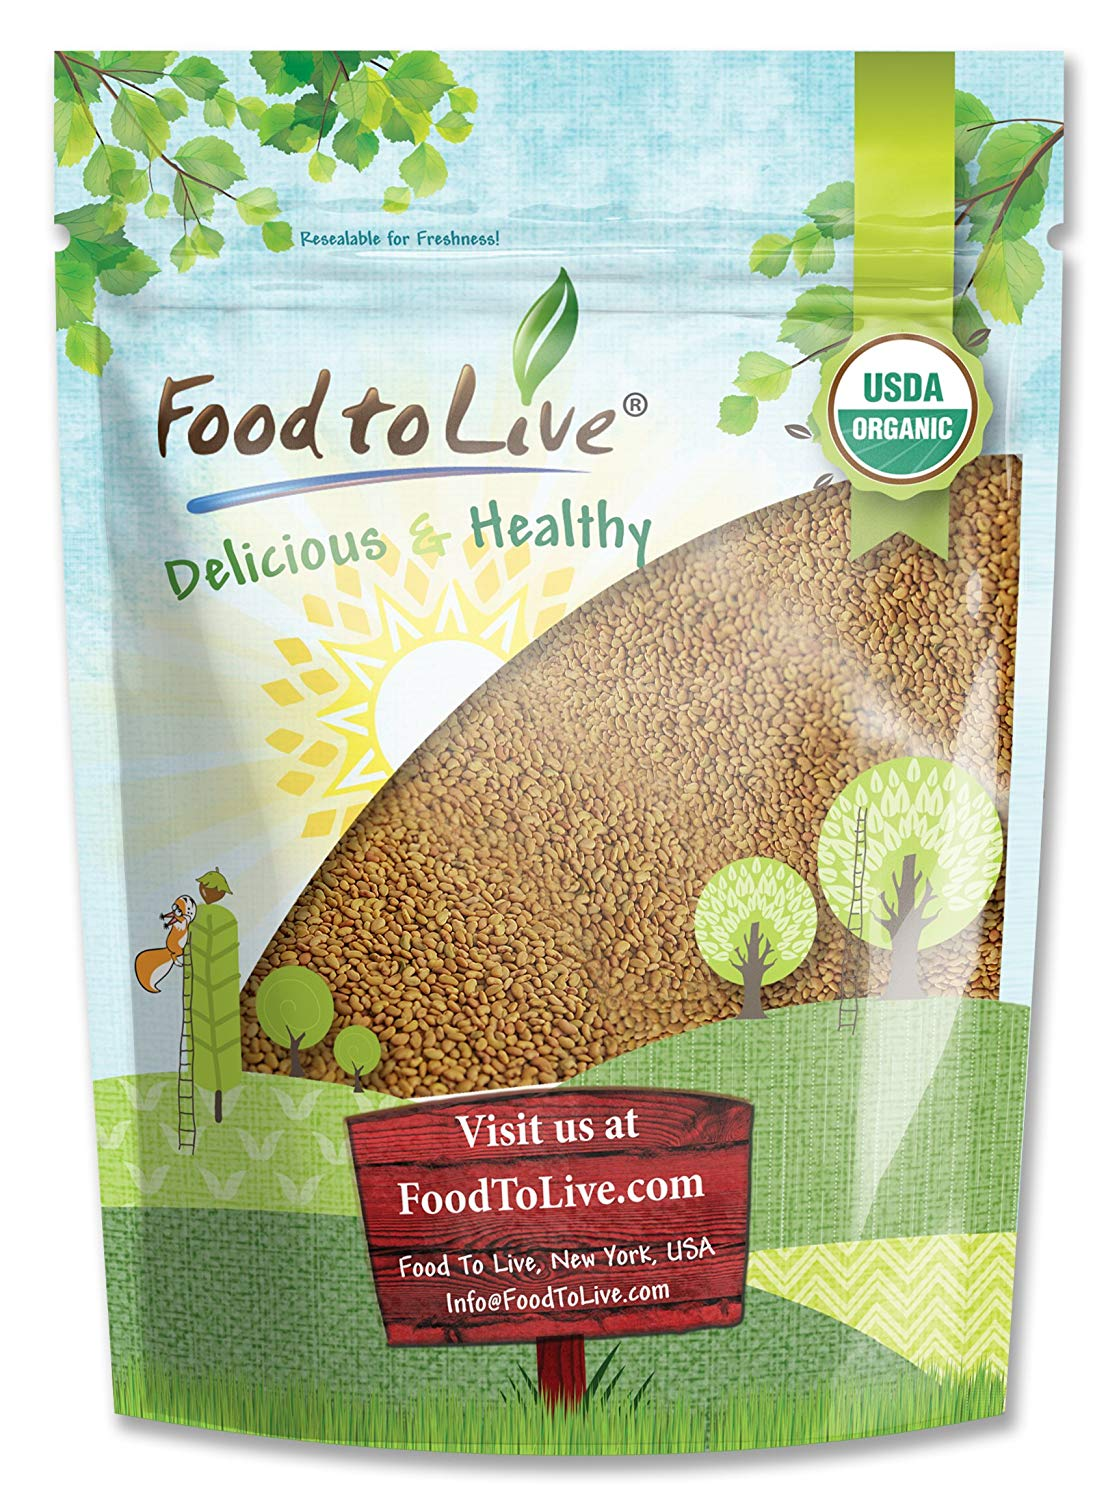 Food To Live Organic Alfalfa Sprouting Seeds (1 Pound)